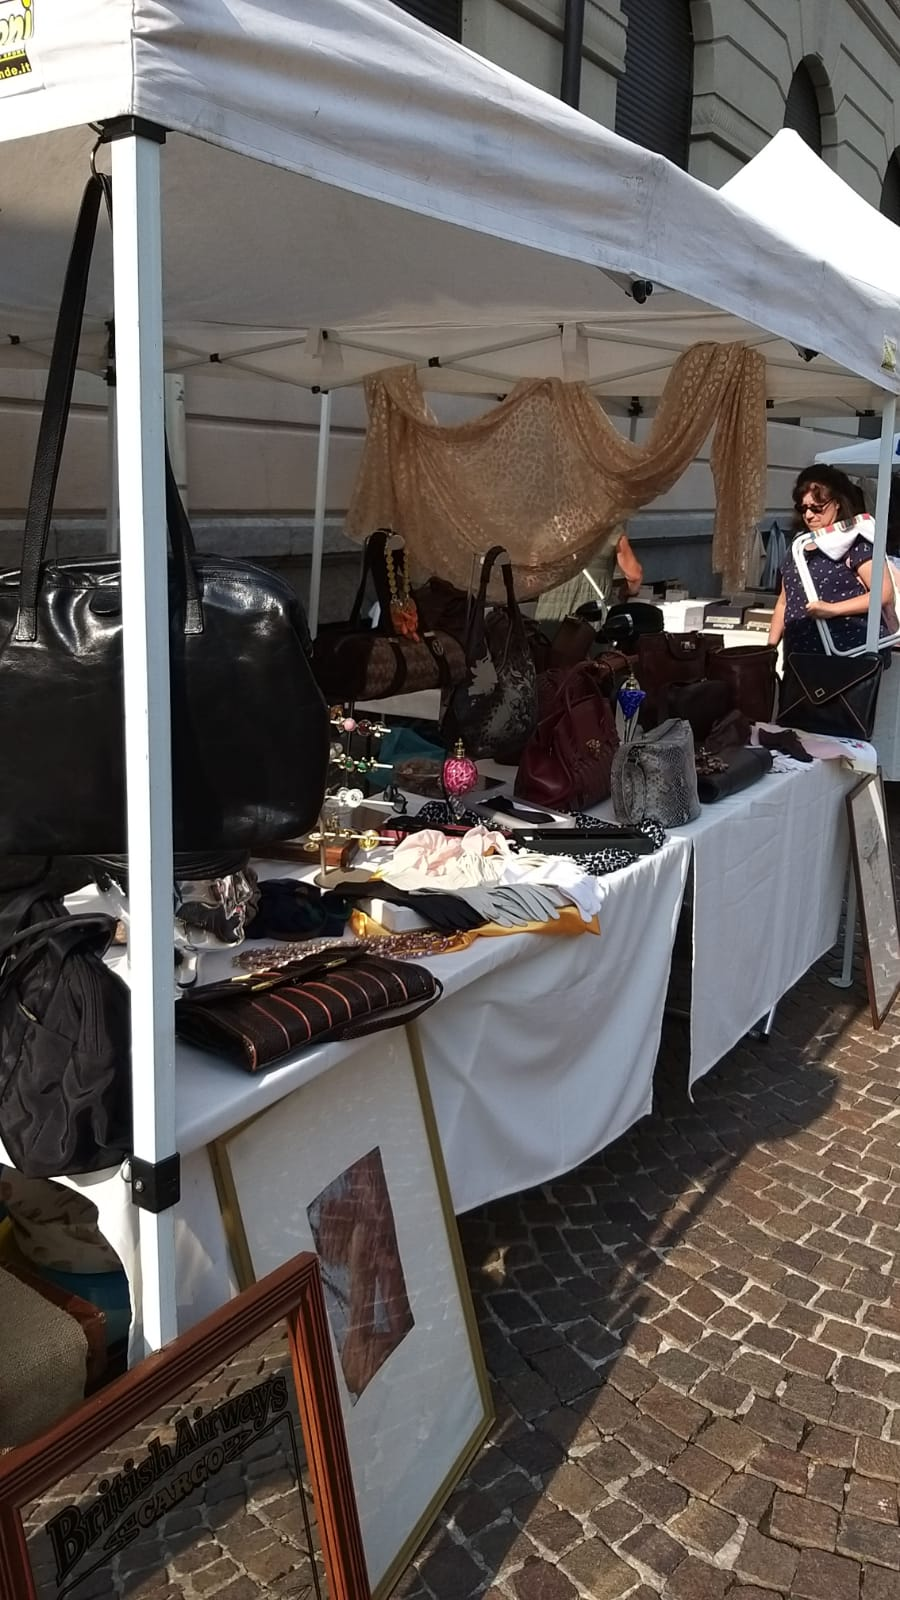 I mercatini dell'antiquariato.Antique markets.